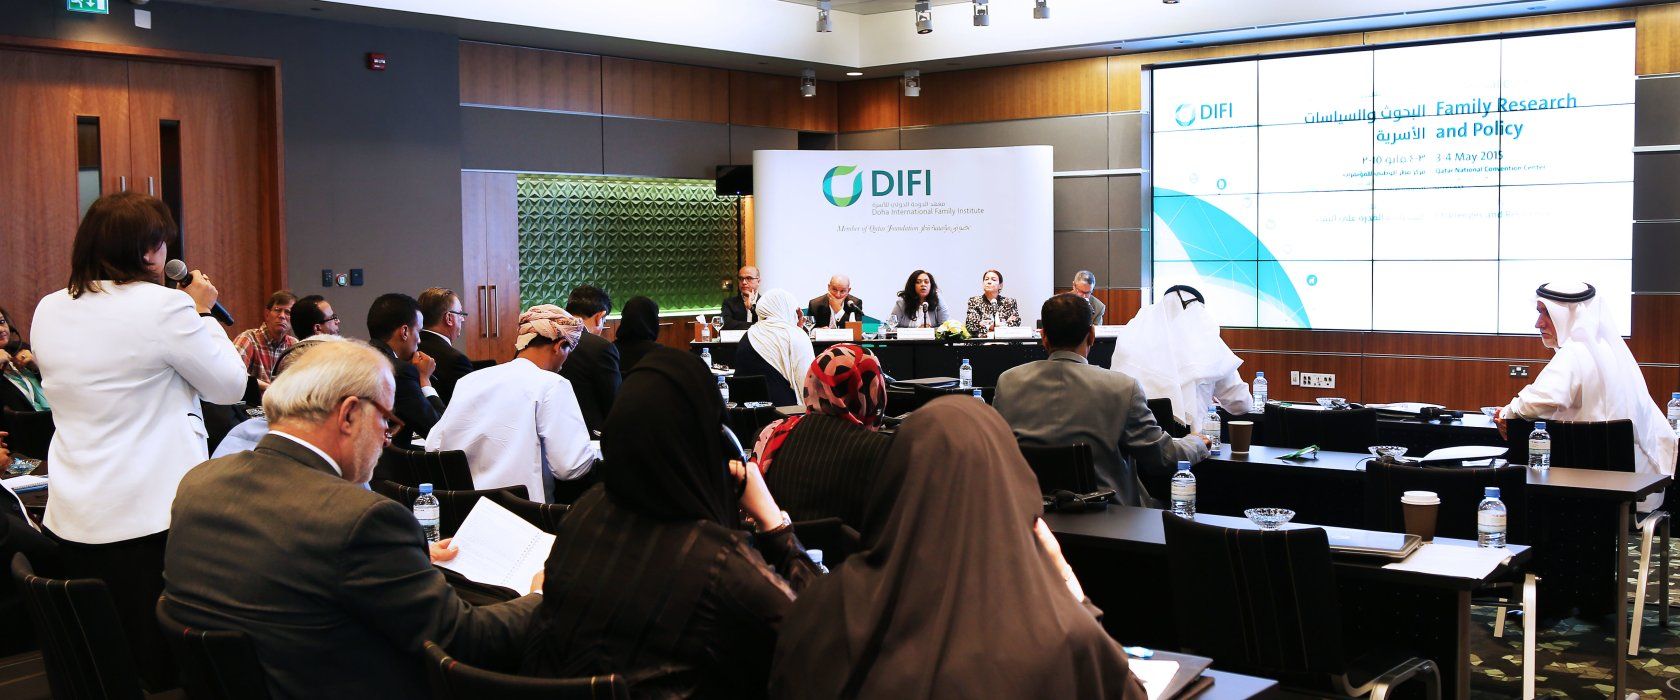 DIFI Named Best Organization to Support Family Issues in the Arab Region